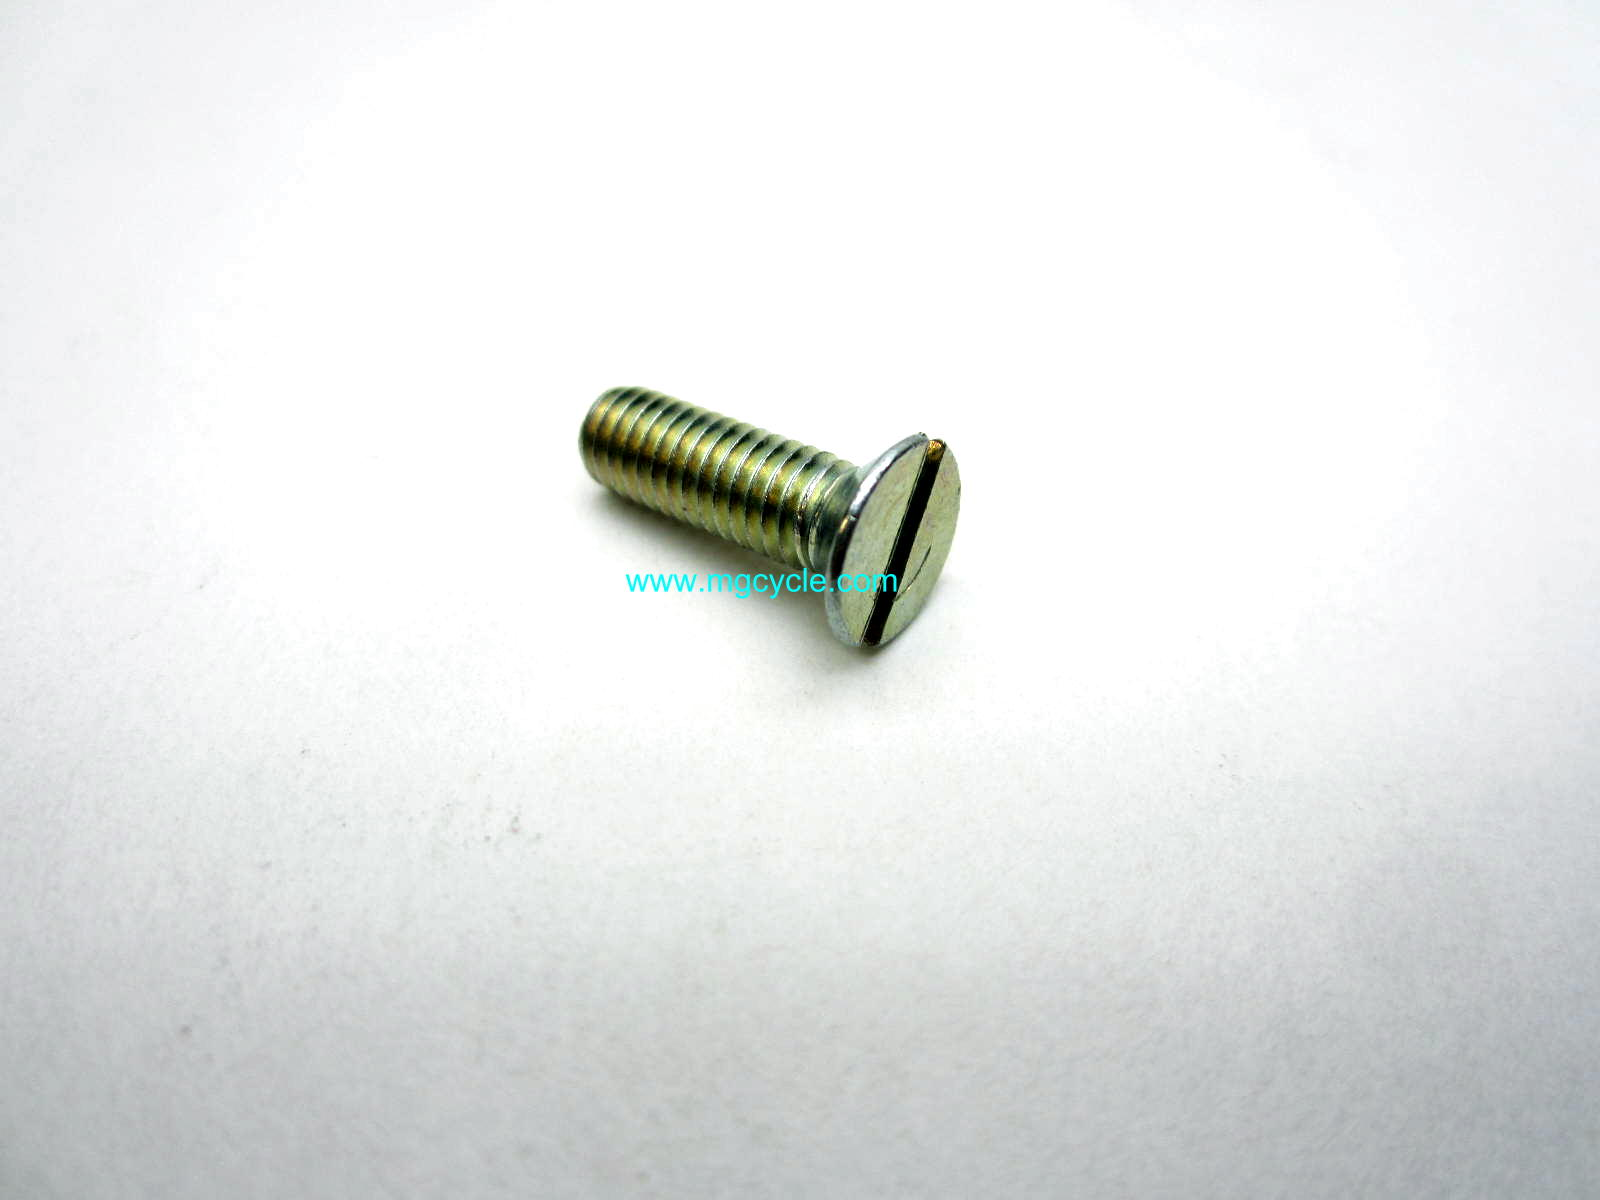 Dellorto 7745 choke body screw VHB PHF VHBZ PHBH carb GU13937900